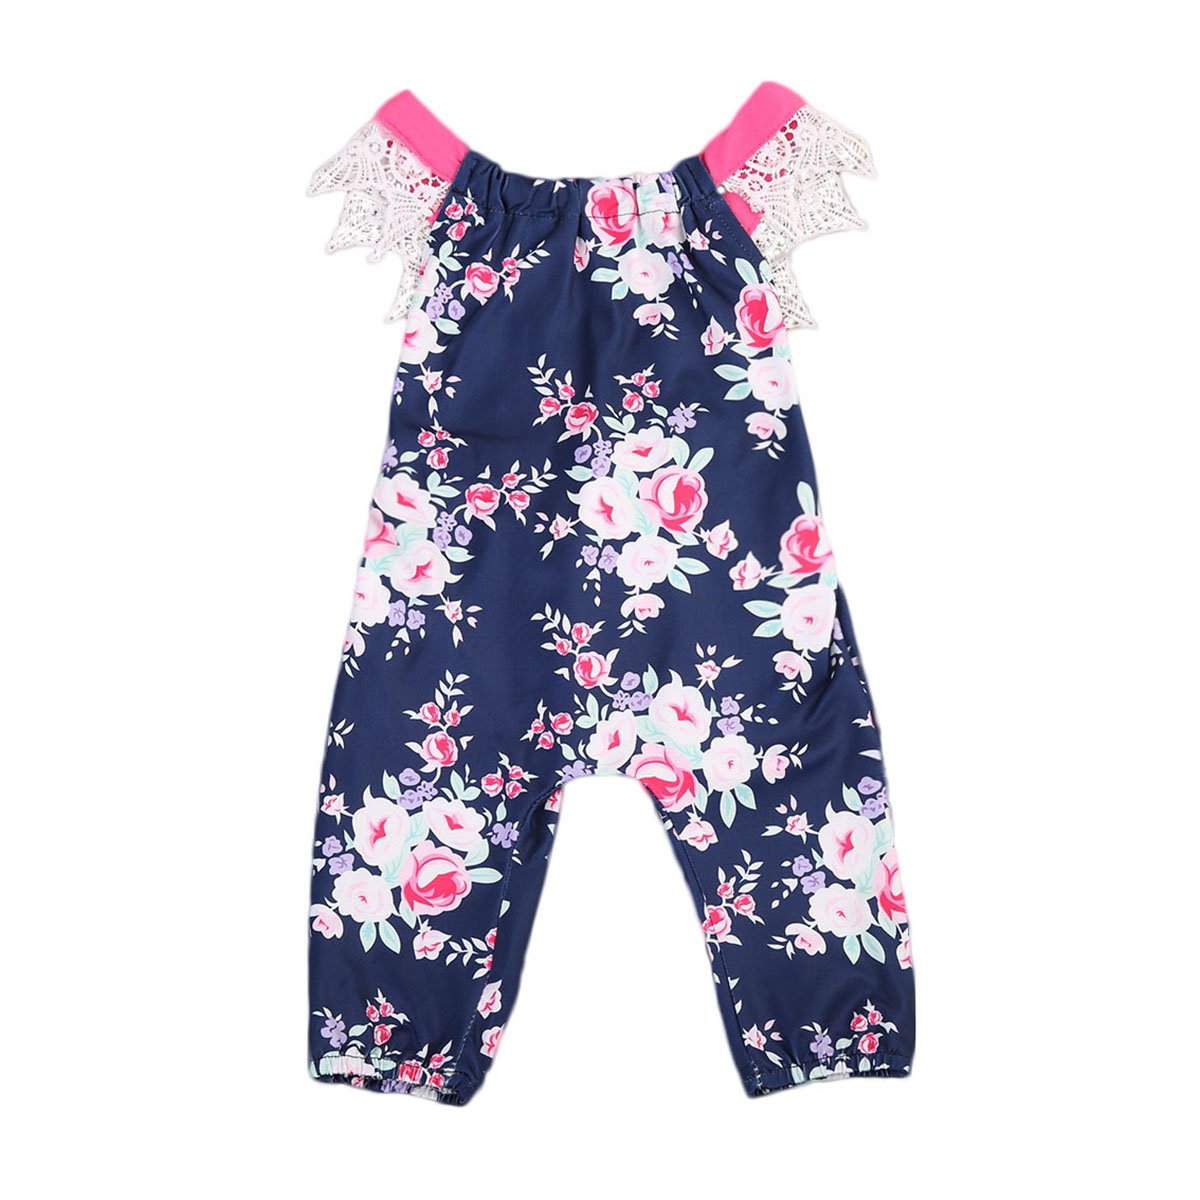 Cute Baby Girls Kids Lace Sleeveless Floral Printed Romper Backless Jumpsuit Sunsuit Beach Outfits